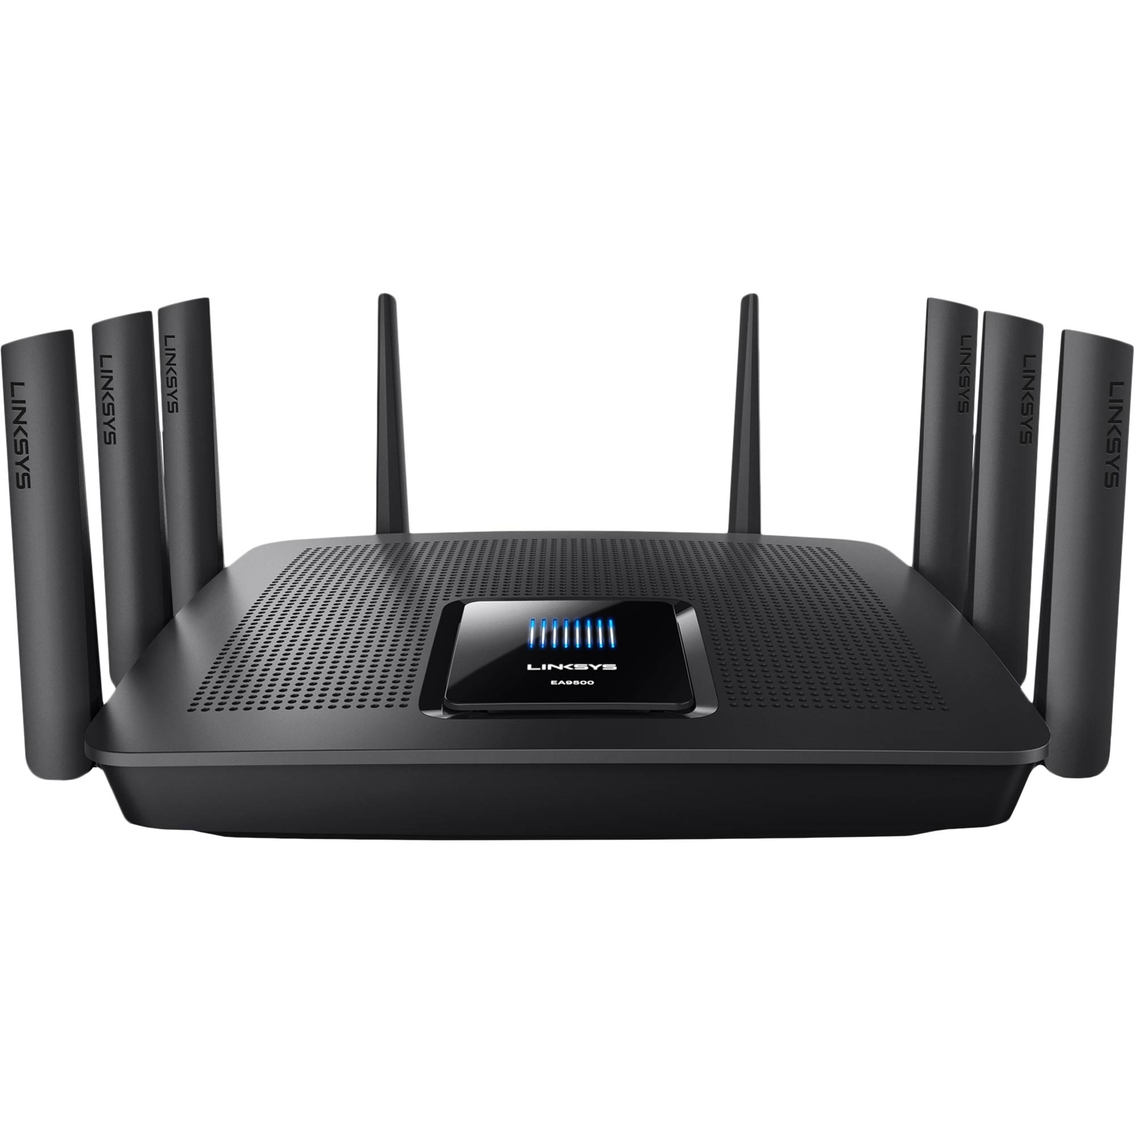 LINKSYS X2000 V1.0B ROUTER DRIVER FOR WINDOWS 7